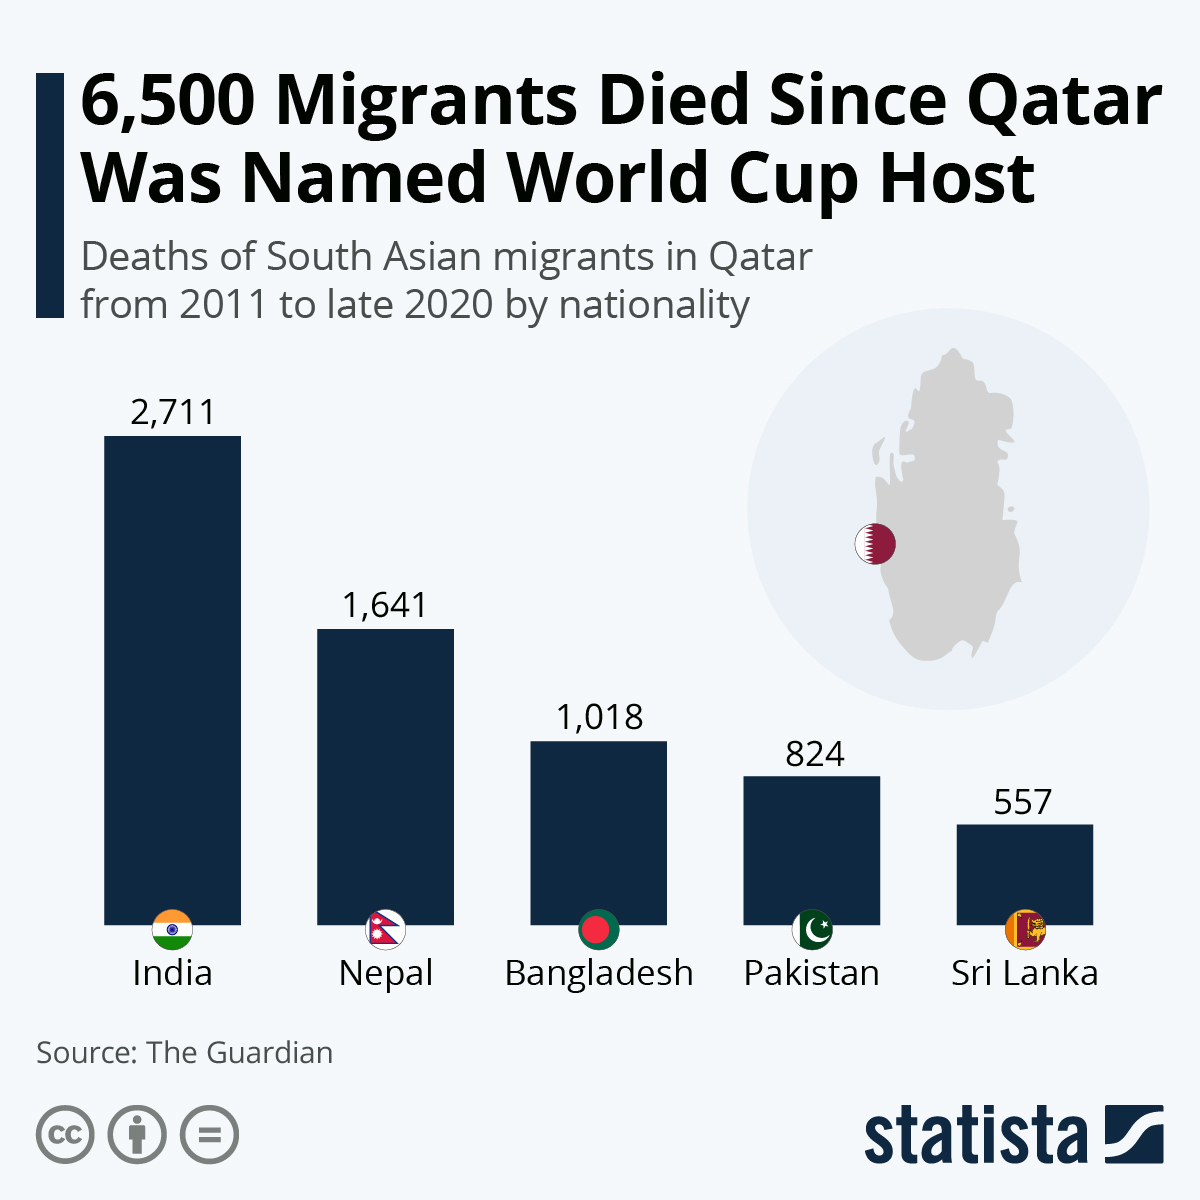 Infographic: 6,500 Migrants Died Since Qatar Was Named World Cup Host | Statista